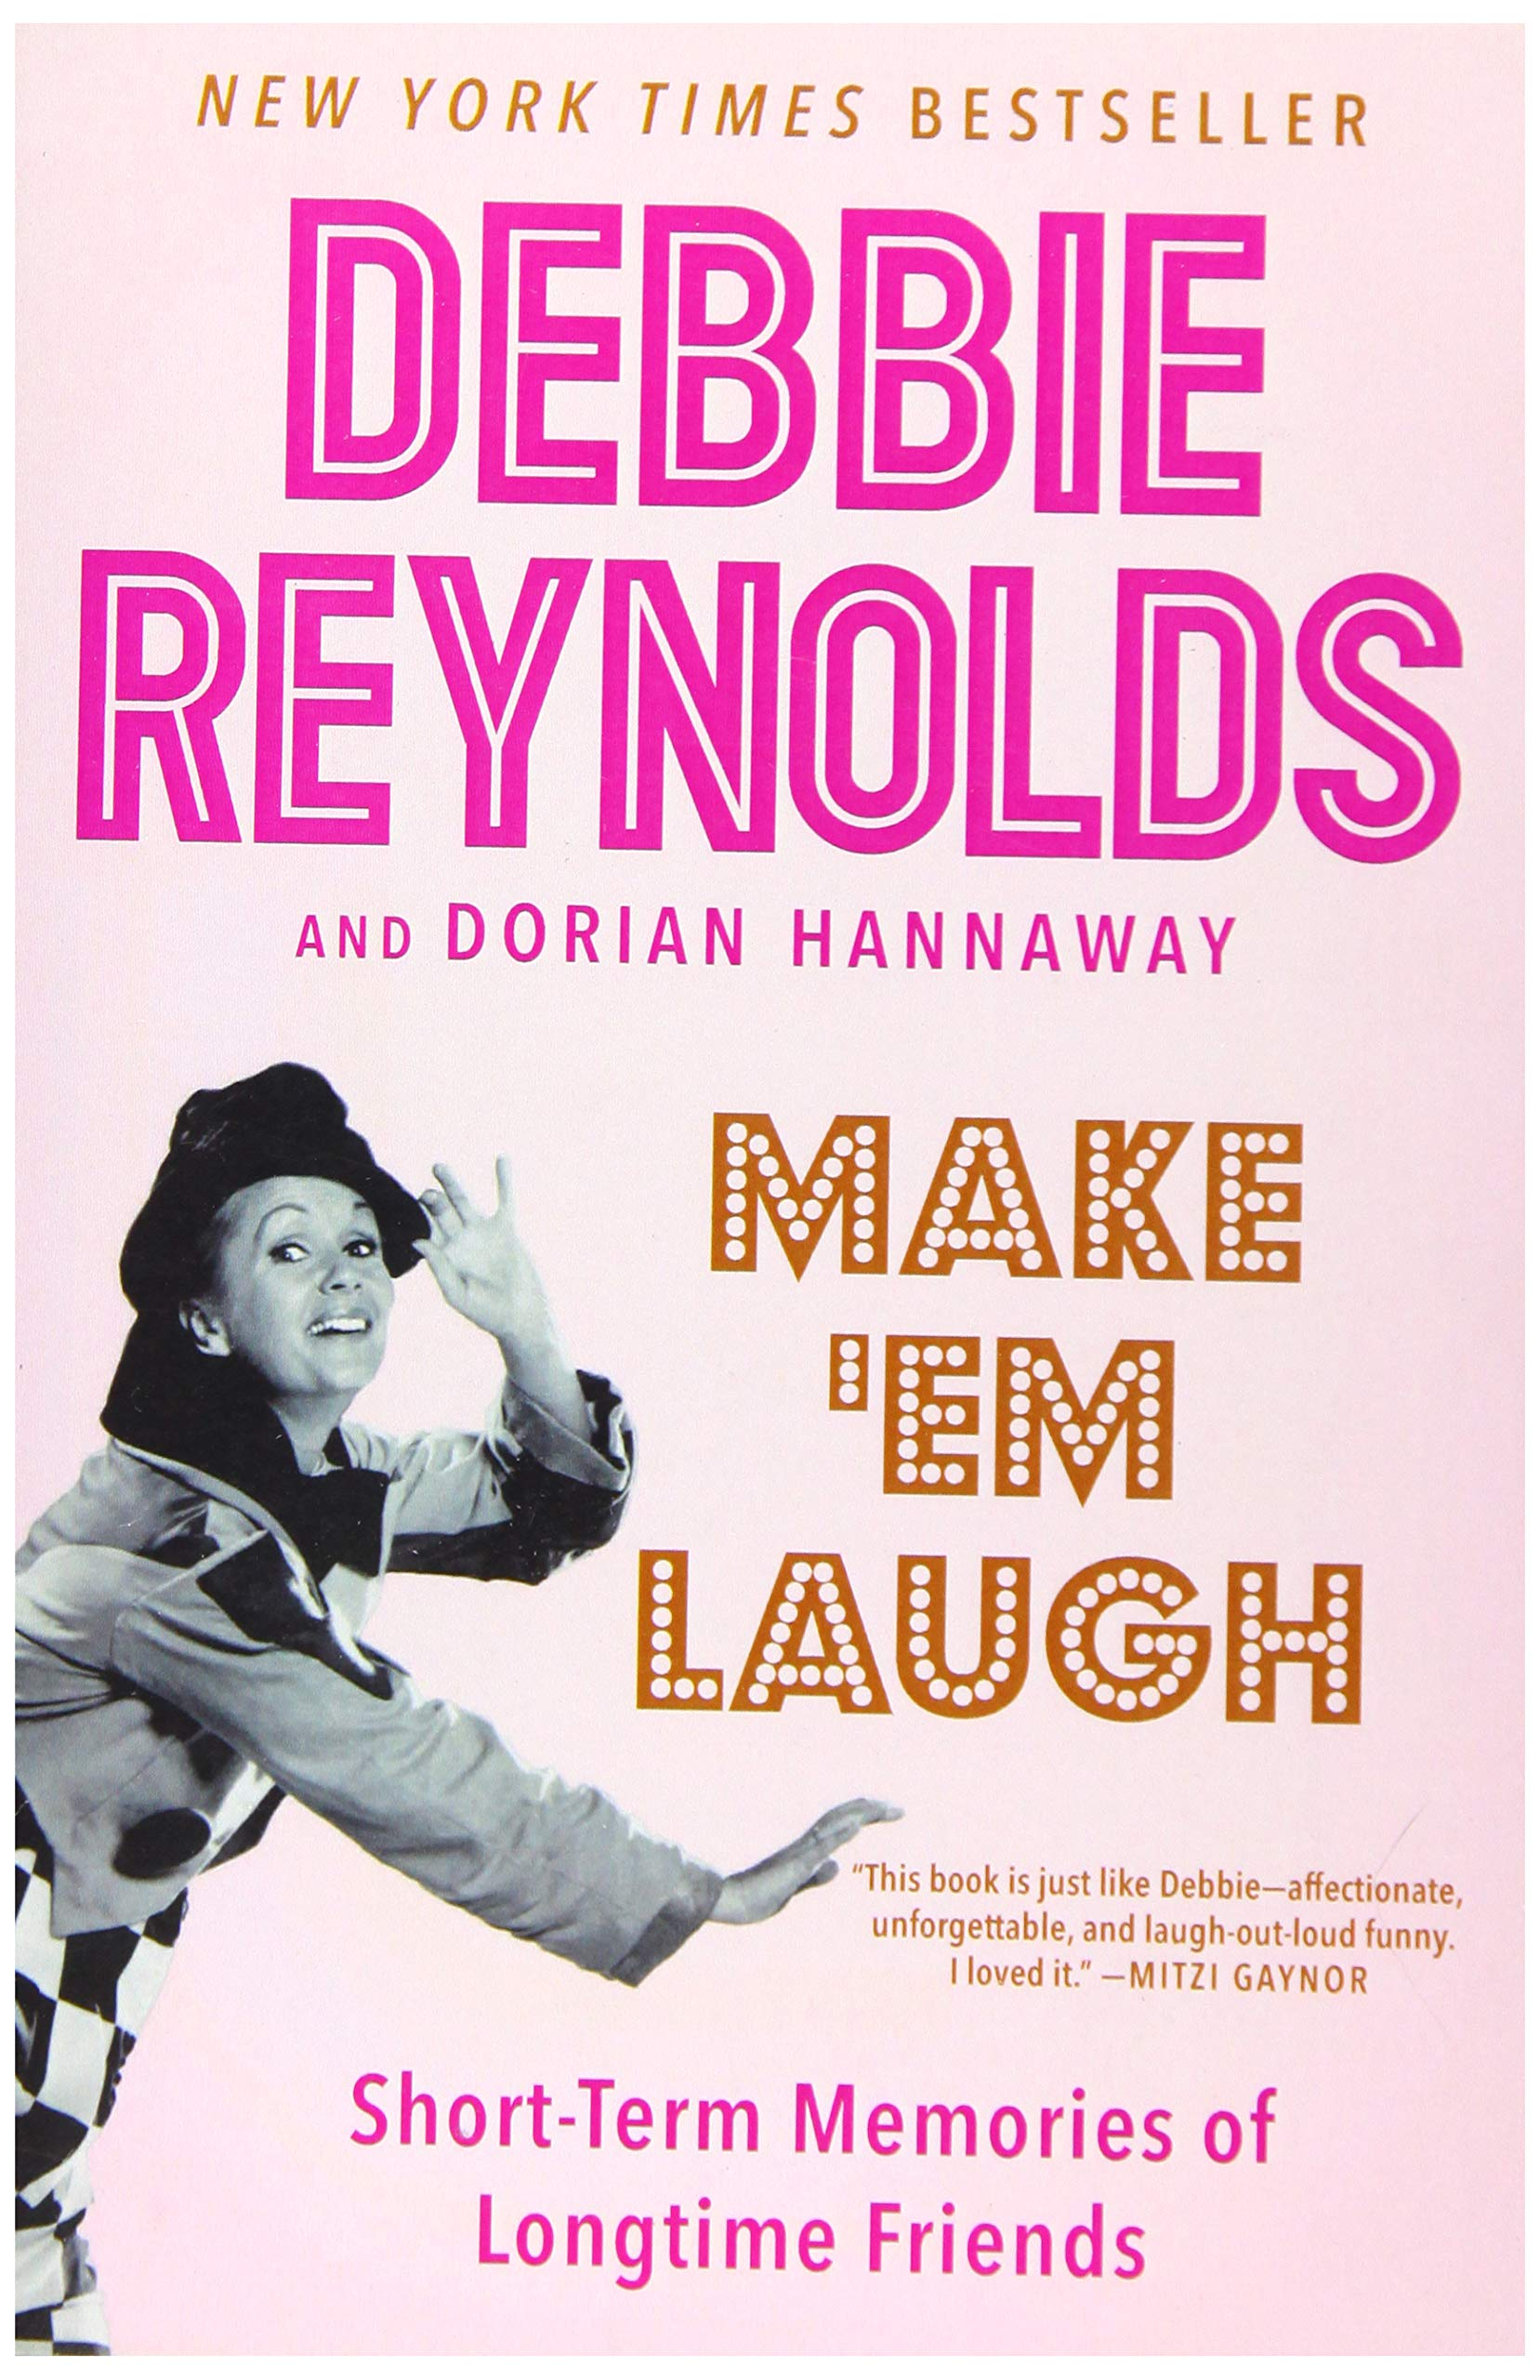 Make 'Em Laugh: Short-Term Memories of Longtime Friends: Reynolds, Debbie,  Hannaway, Dorian: 9780062416643: Amazon.com: Books